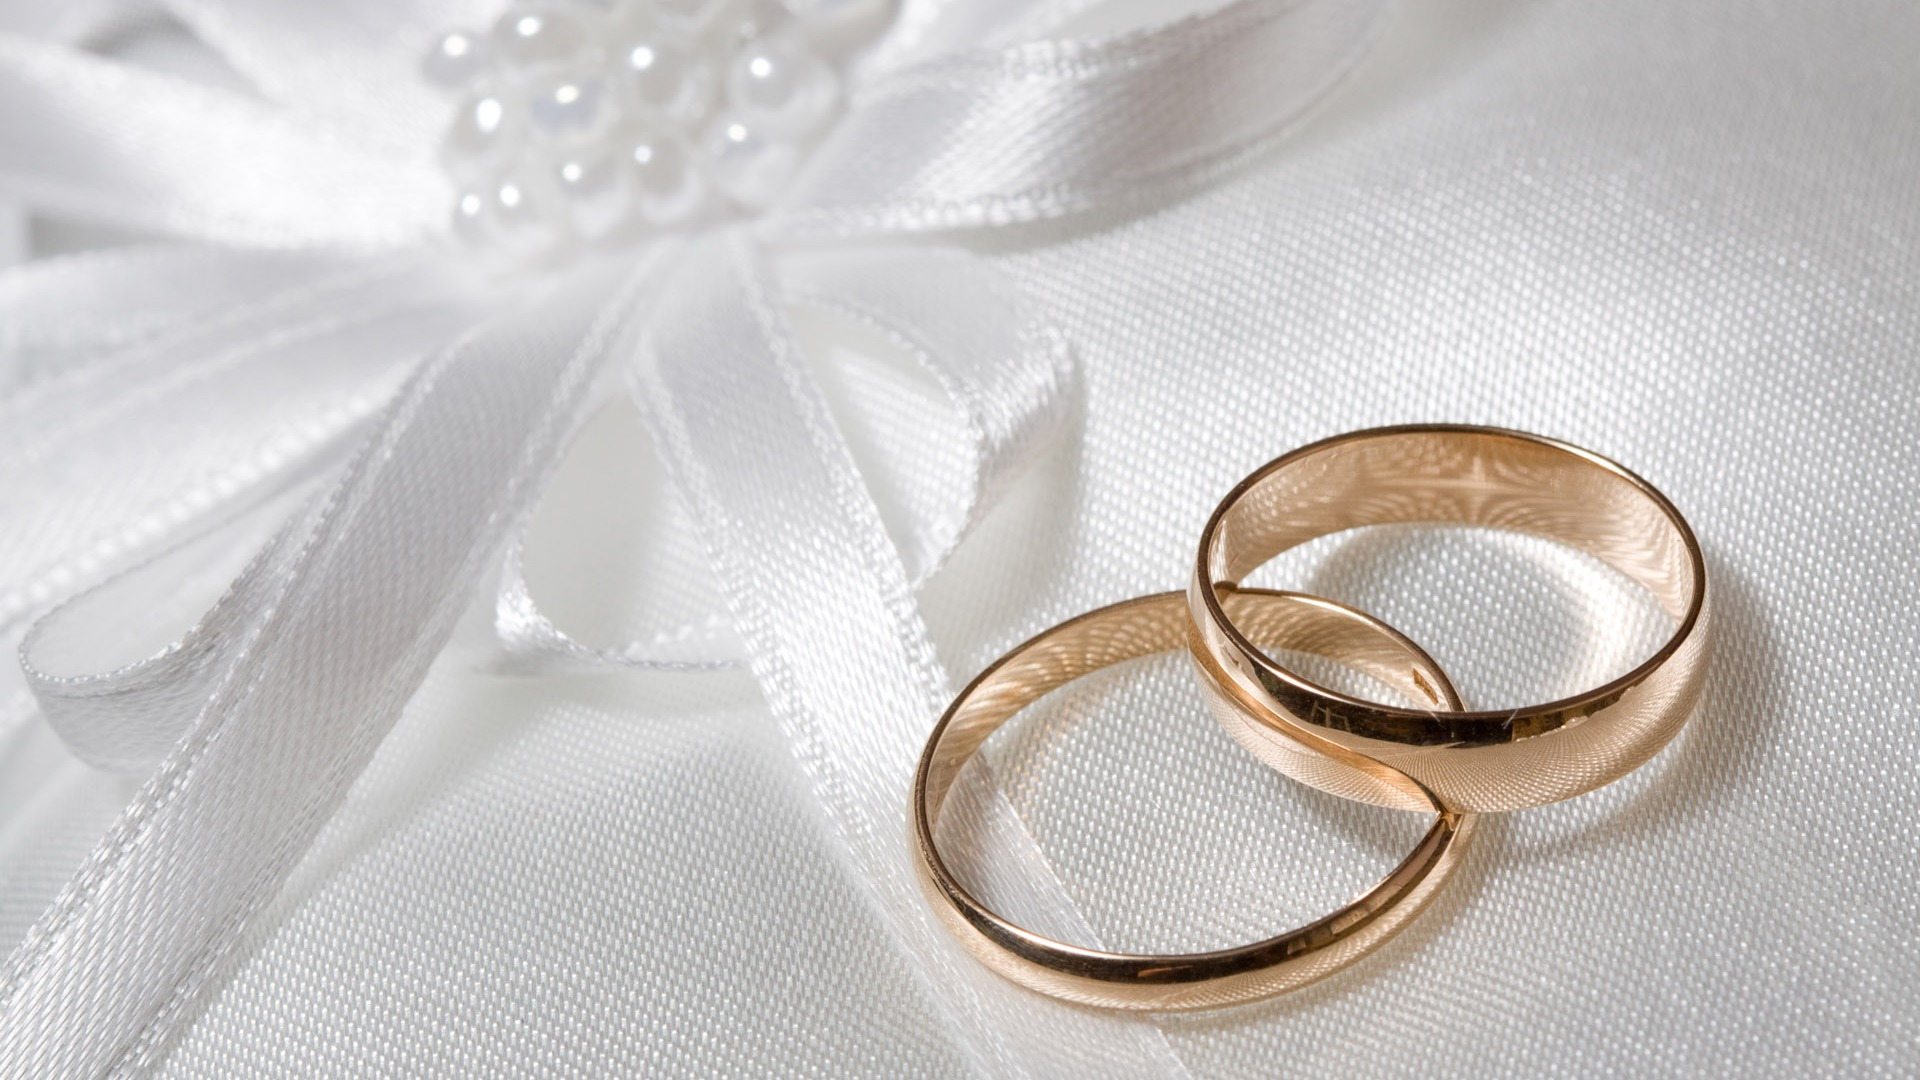 download ring ceremony images - Wedding Ring Ceremony